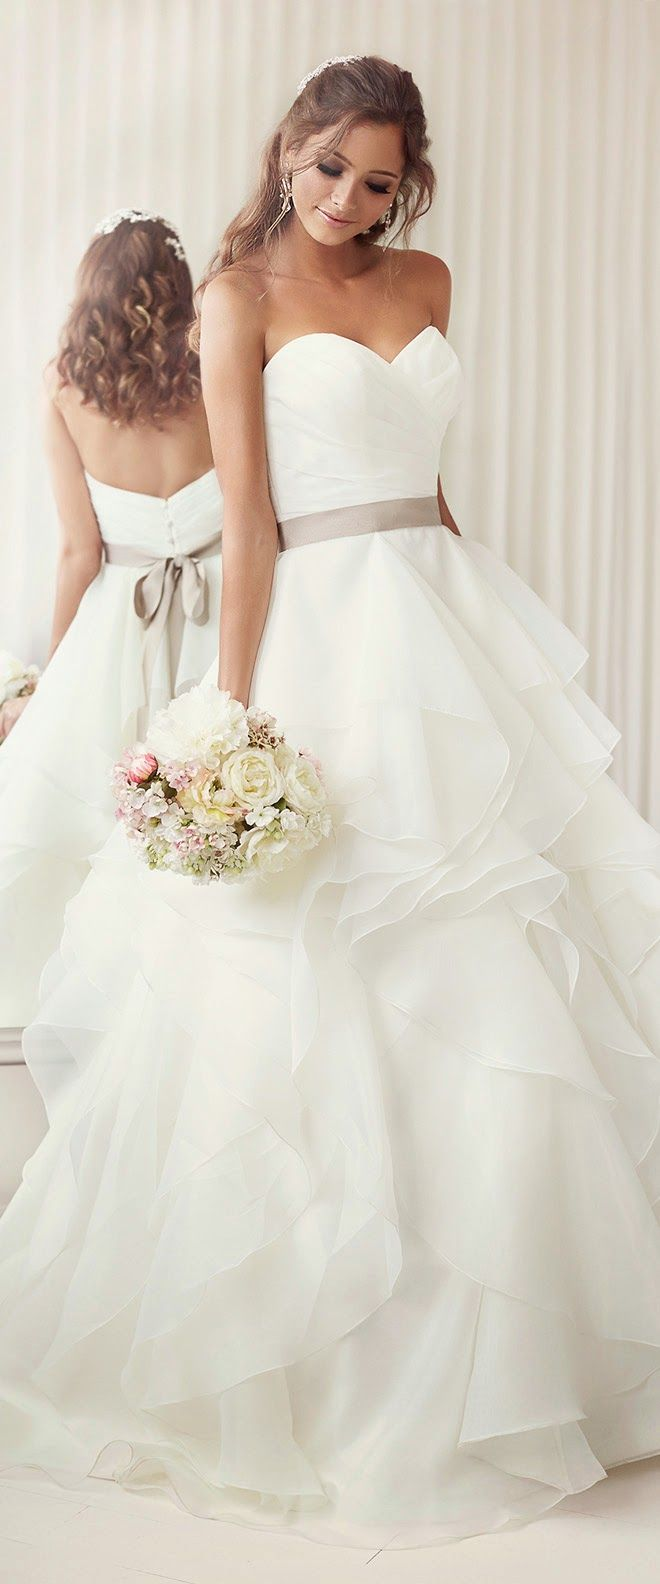 wedding dresses cute wedding dresses Essense of Australia Wedding Dresses